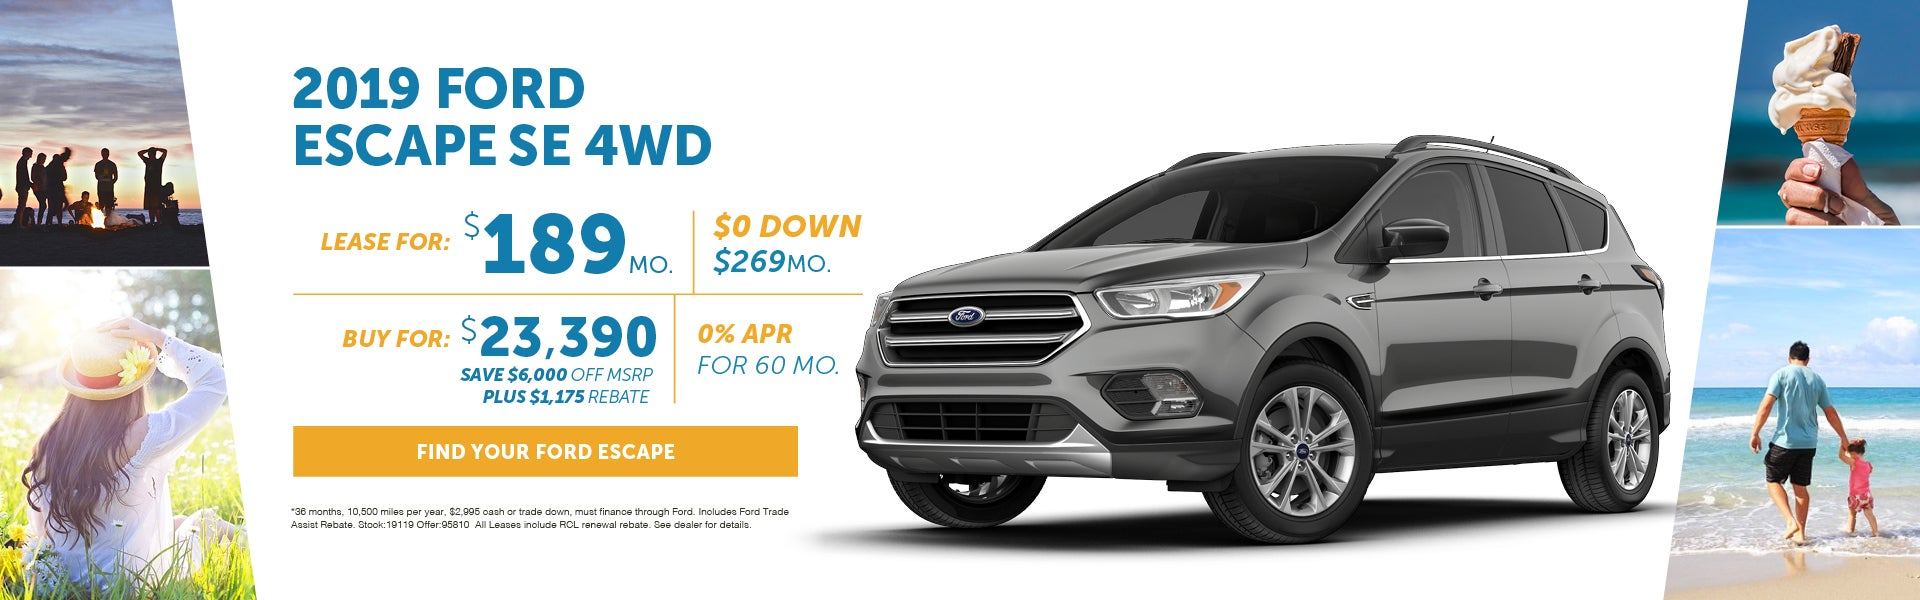 Ford Escape Lease >> Ford Escape Deals And Specials In Ma Ford Escape Lease Deals Near